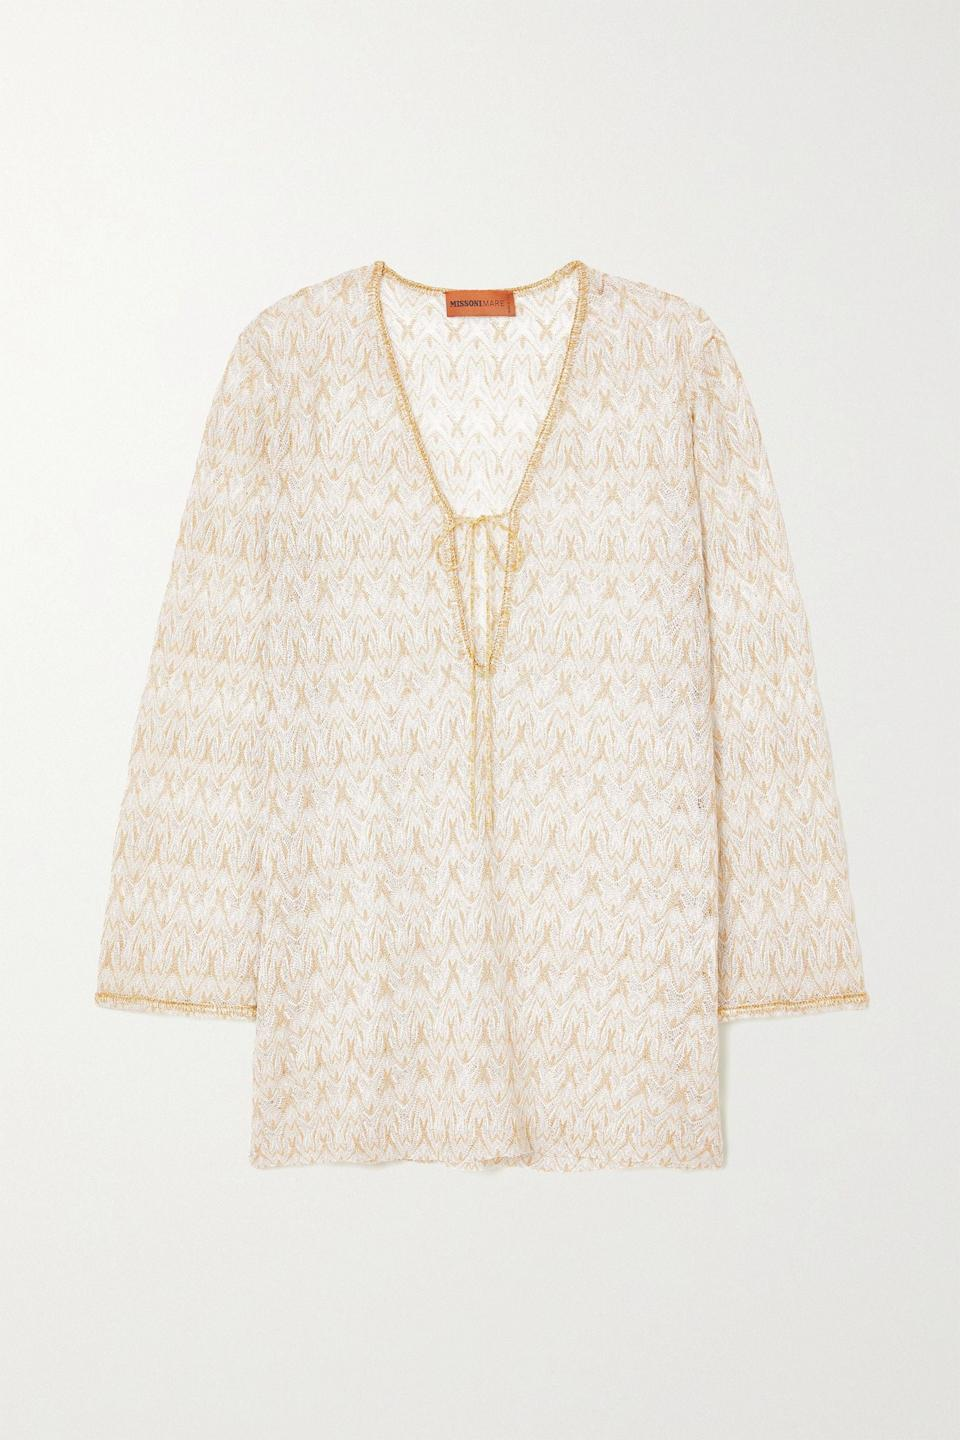 """<p><strong>Missoni</strong></p><p>net-a-porter.com</p><p><strong>$1260.00</strong></p><p><a href=""""https://go.redirectingat.com?id=74968X1596630&url=https%3A%2F%2Fwww.net-a-porter.com%2Fen-us%2Fshop%2Fproduct%2Fmissoni%2Fclothing%2Fcoverups%2Fmare-metallic-crochet-knit-kaftan%2F2204324138987167&sref=https%3A%2F%2Fwww.townandcountrymag.com%2Fstyle%2Ffashion-trends%2Fg27681571%2Fbest-beach-coverups%2F"""" rel=""""nofollow noopener"""" target=""""_blank"""" data-ylk=""""slk:Shop Now"""" class=""""link rapid-noclick-resp"""">Shop Now</a></p><p>If you want a fun knit <a href=""""https://www.townandcountrymag.com/style/fashion-trends/g32390597/best-caftan-dresses/"""" rel=""""nofollow noopener"""" target=""""_blank"""" data-ylk=""""slk:caftan"""" class=""""link rapid-noclick-resp"""">caftan</a>, when in doubt go for a Missoni whose knits are second to none. </p>"""